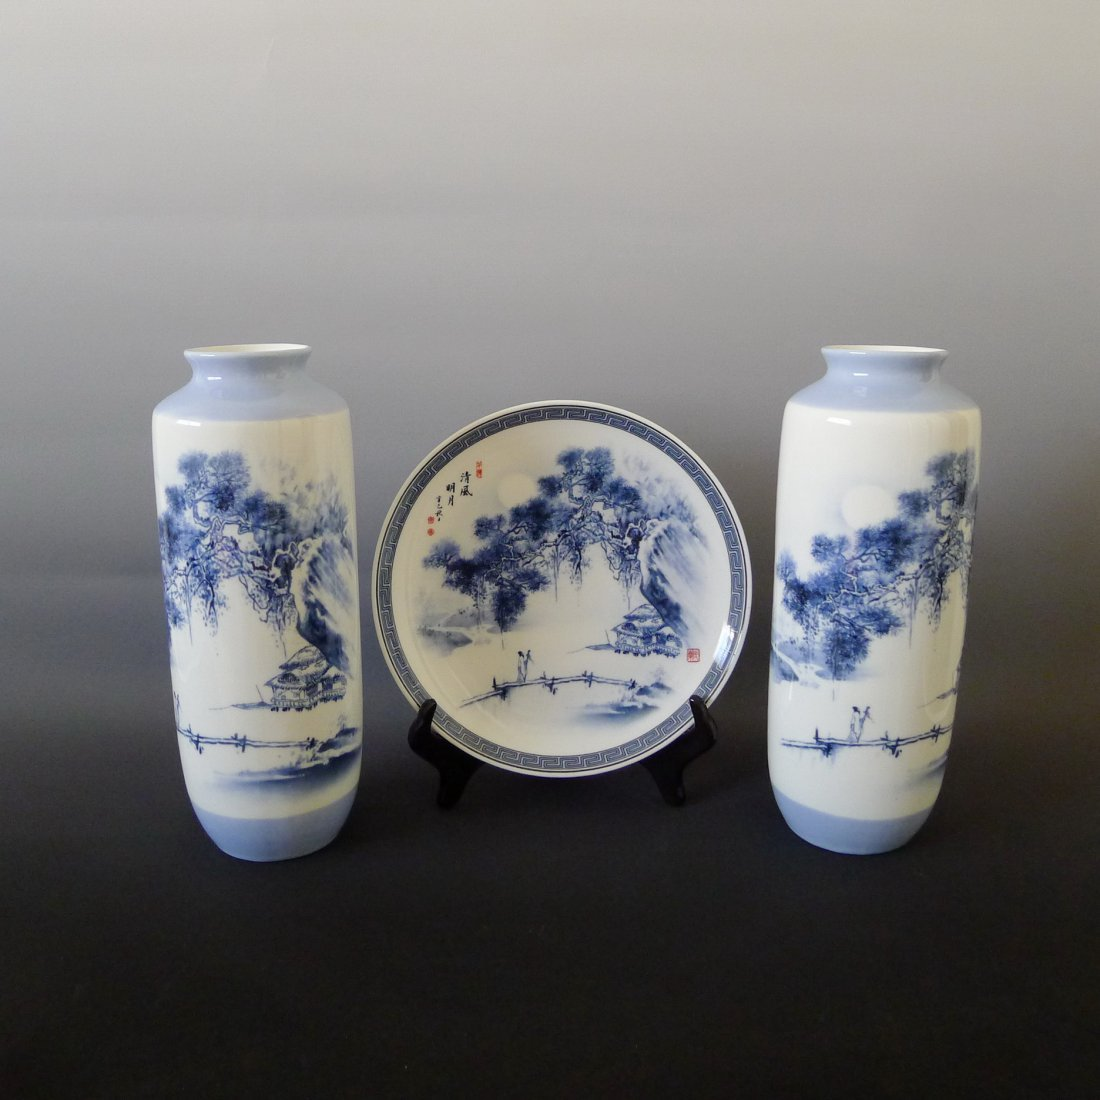 THREE PIECES OF CHINESE BLUE & WHITE PORCELAIN ITEMS